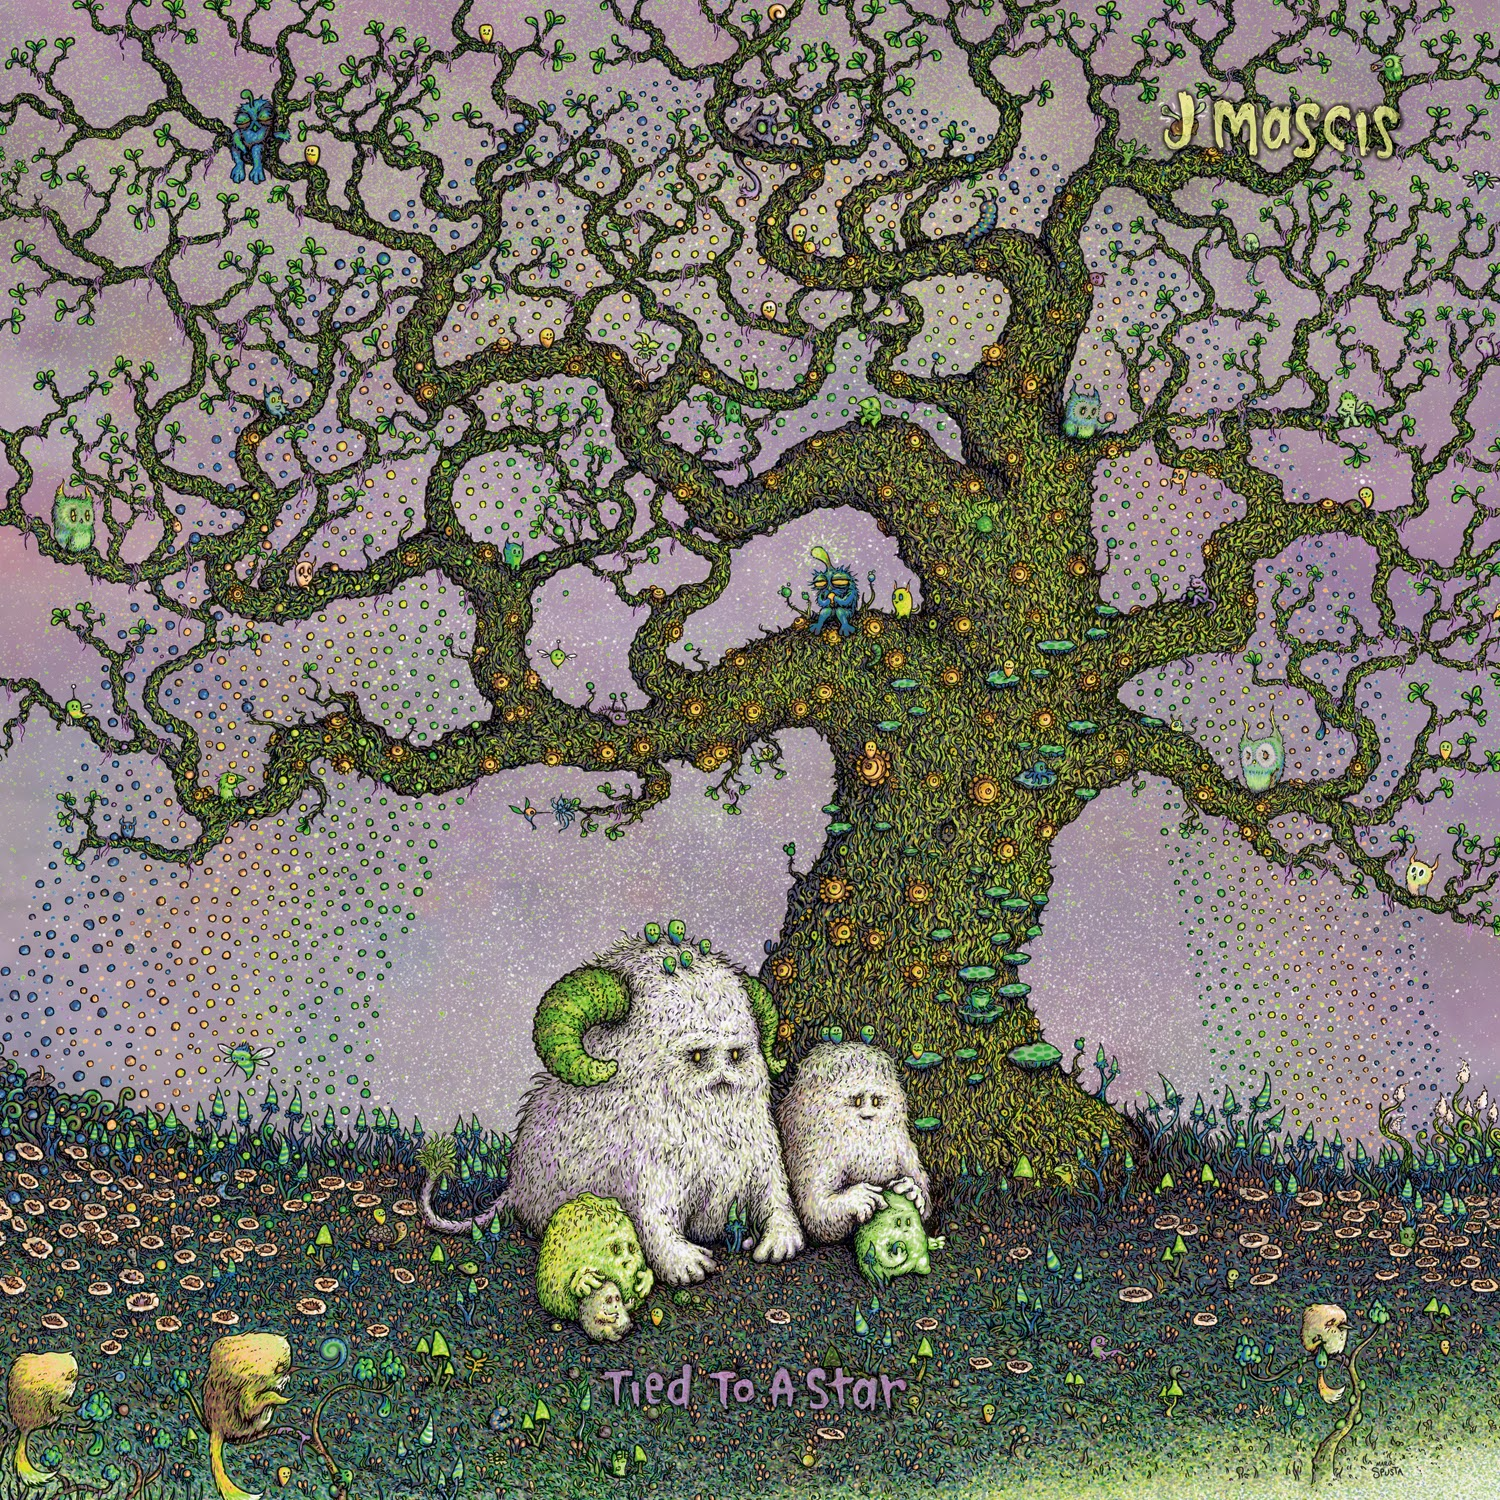 J MASCIS - (2014) Tied to a star